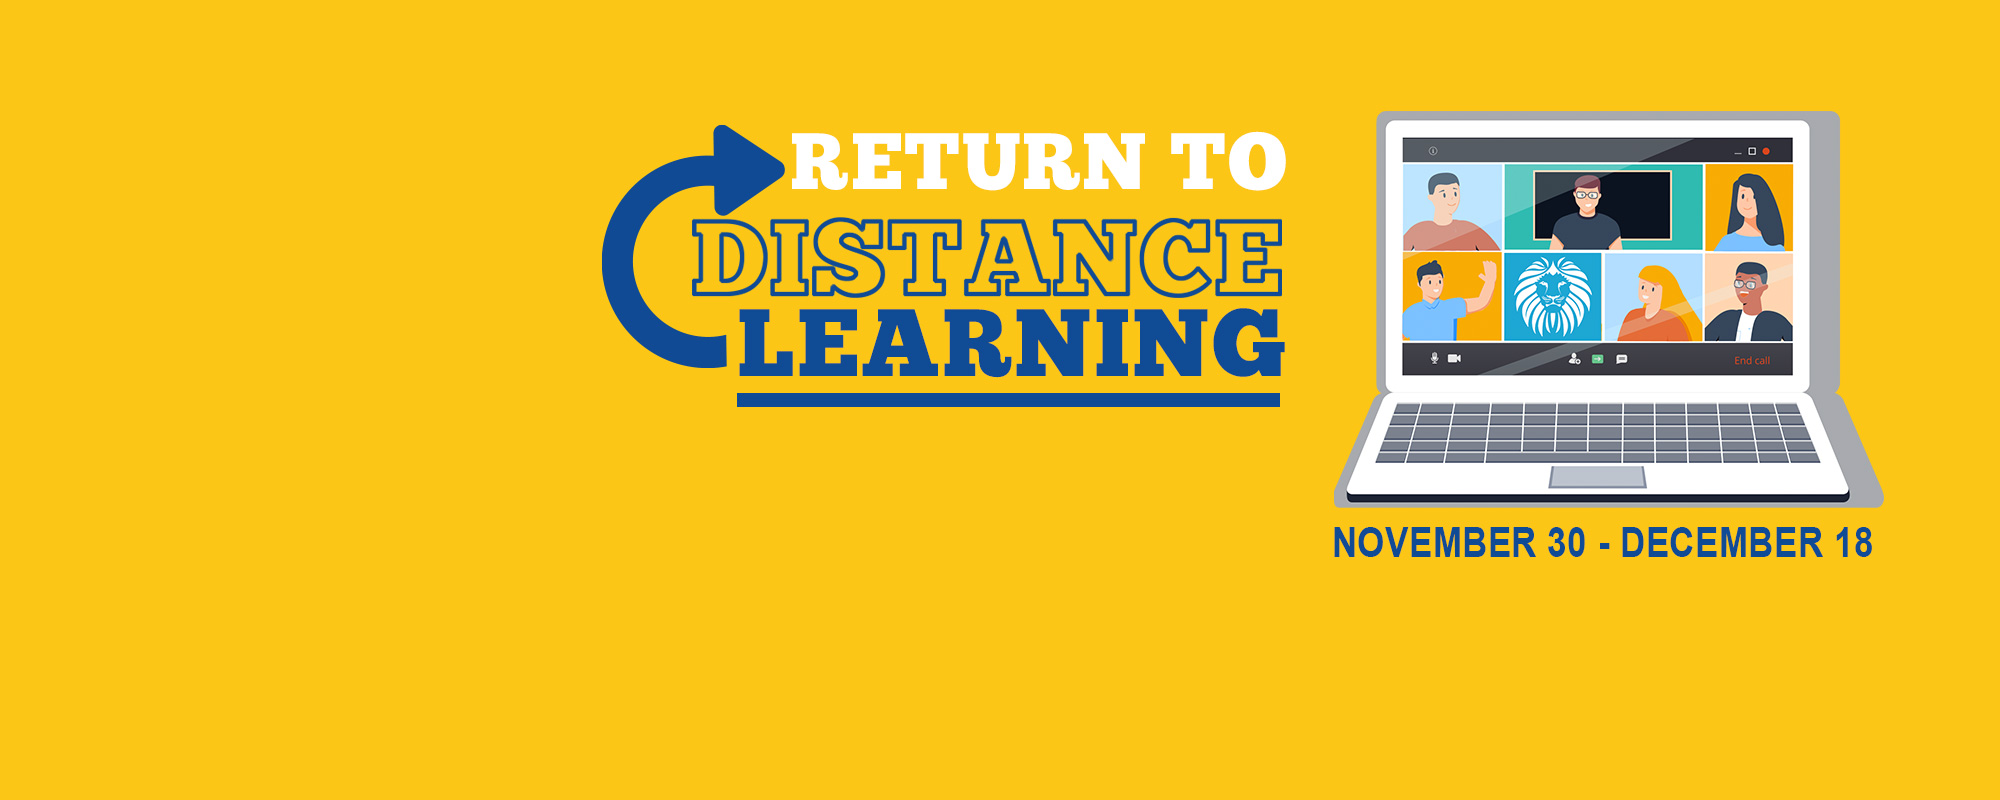 Return to Distance Learning November 30-December 18